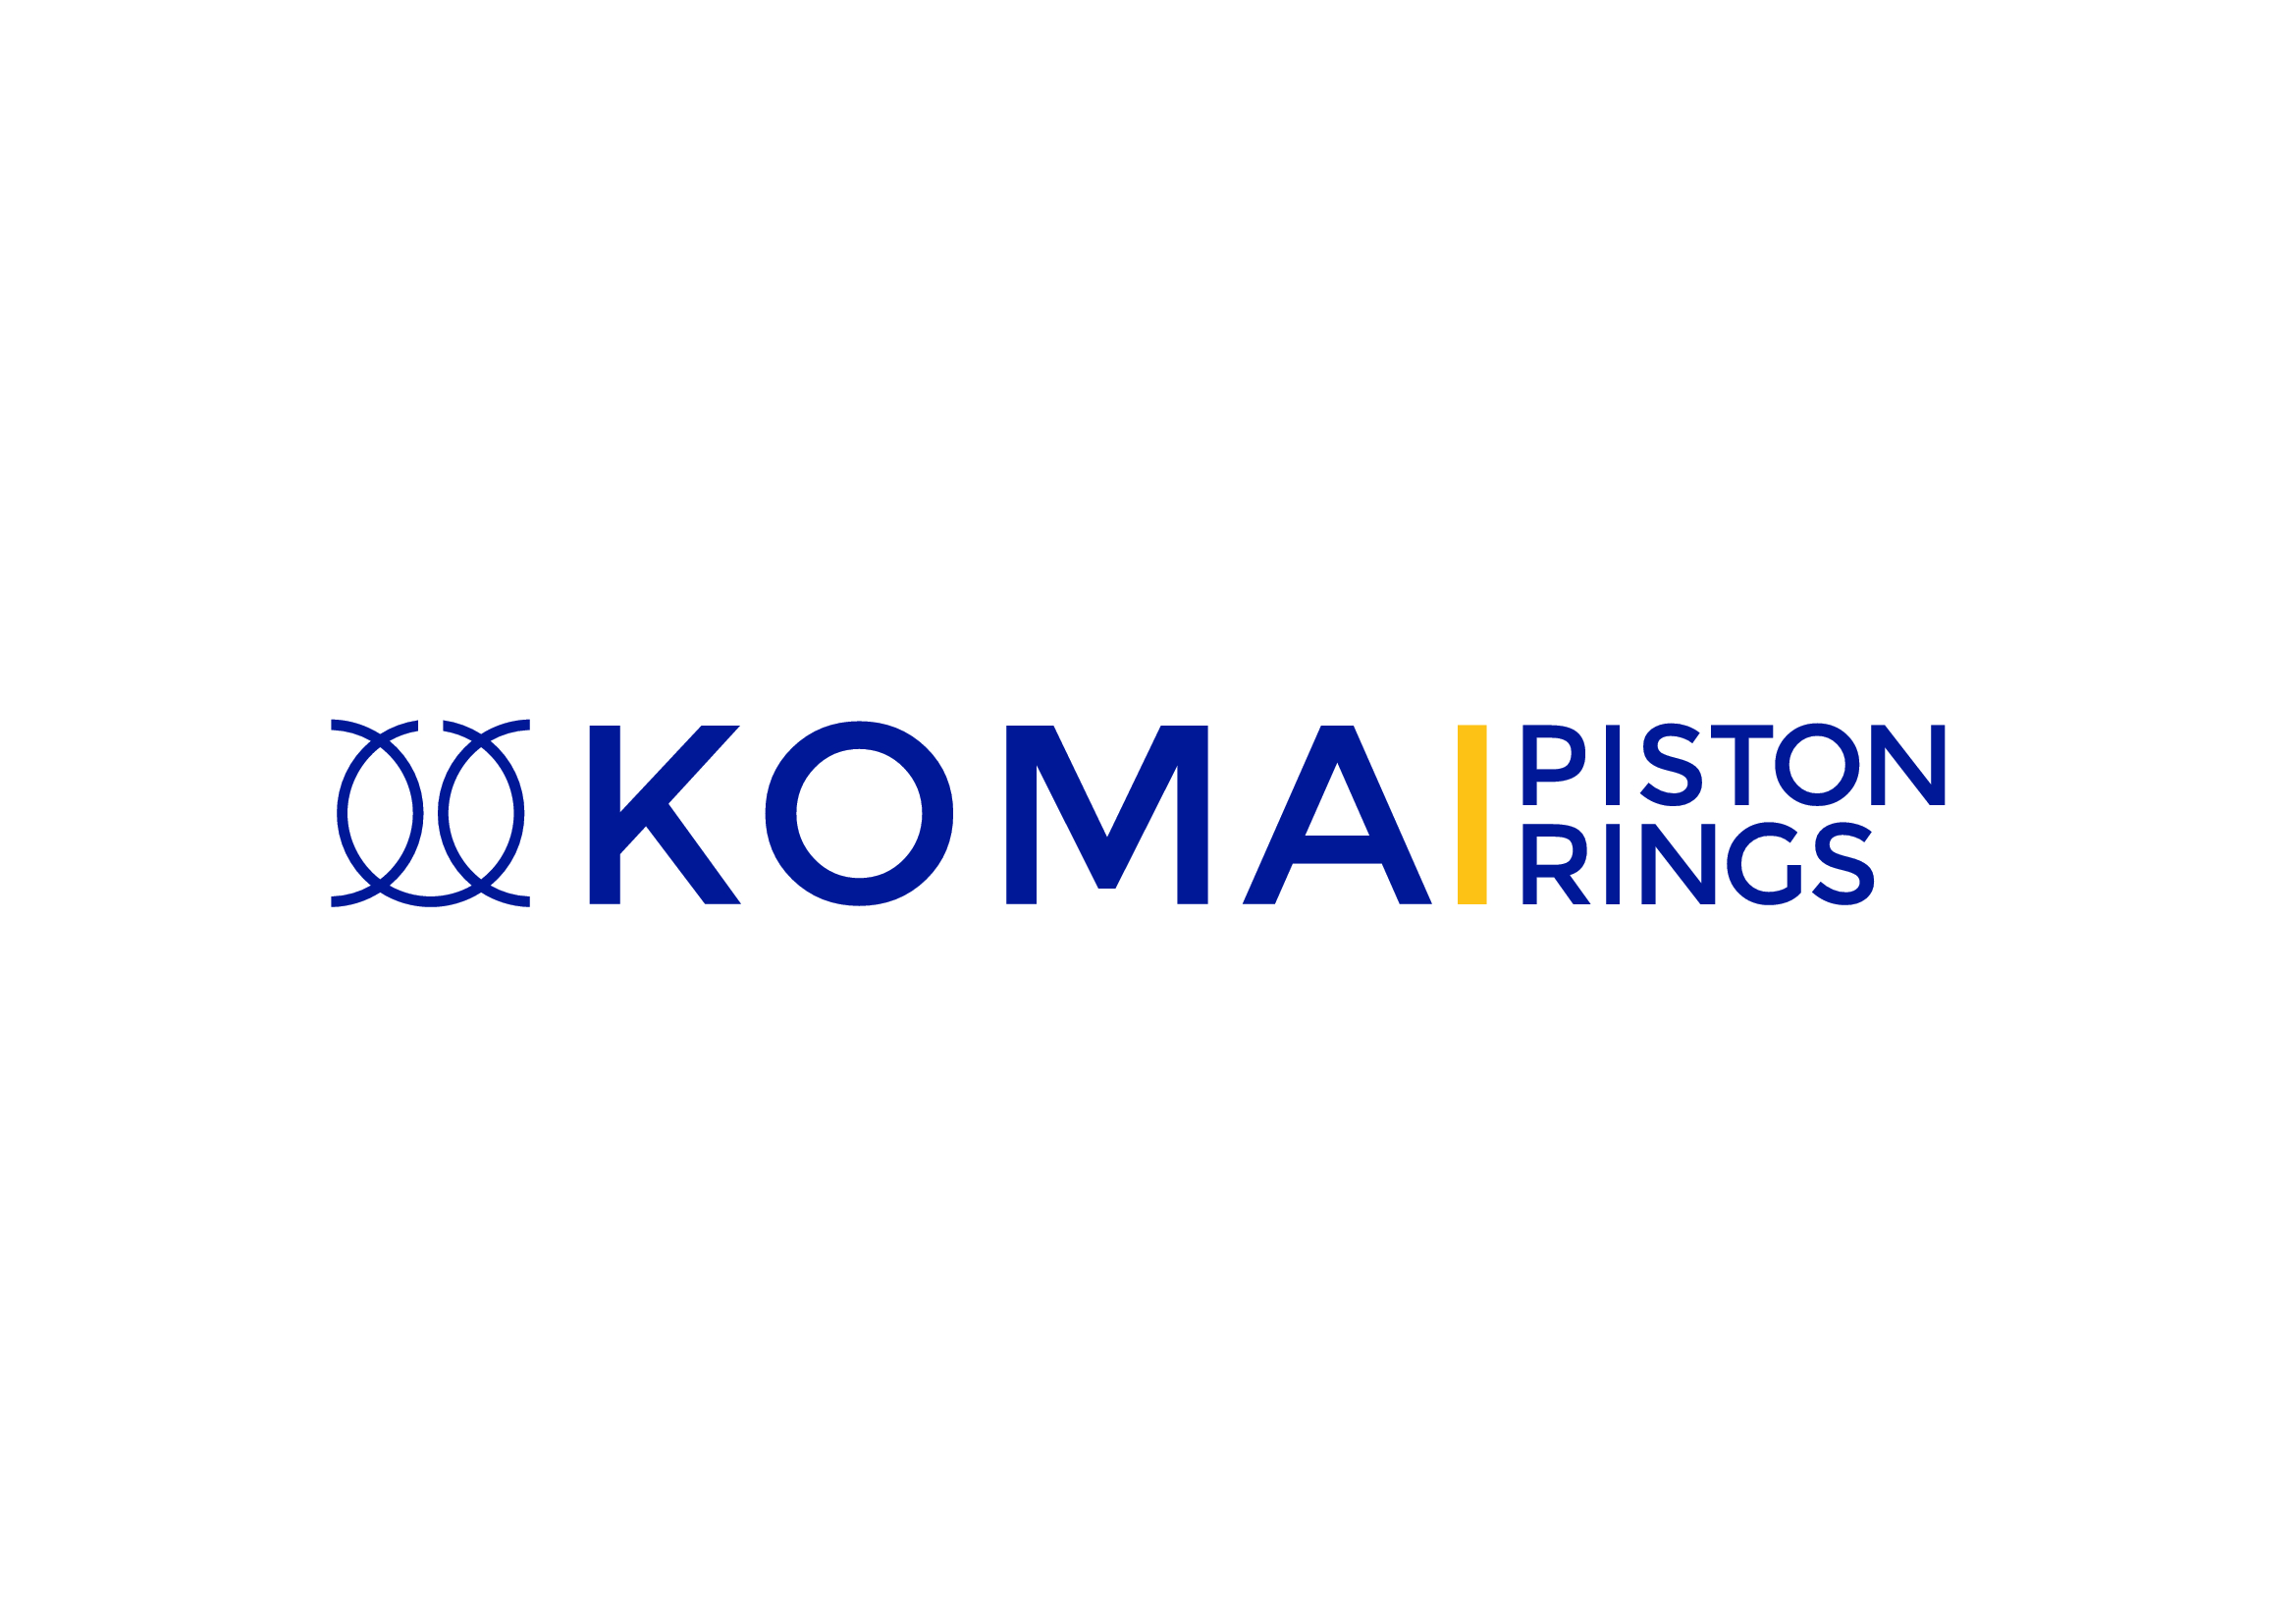 Piston Rings Komarov s.r.o.